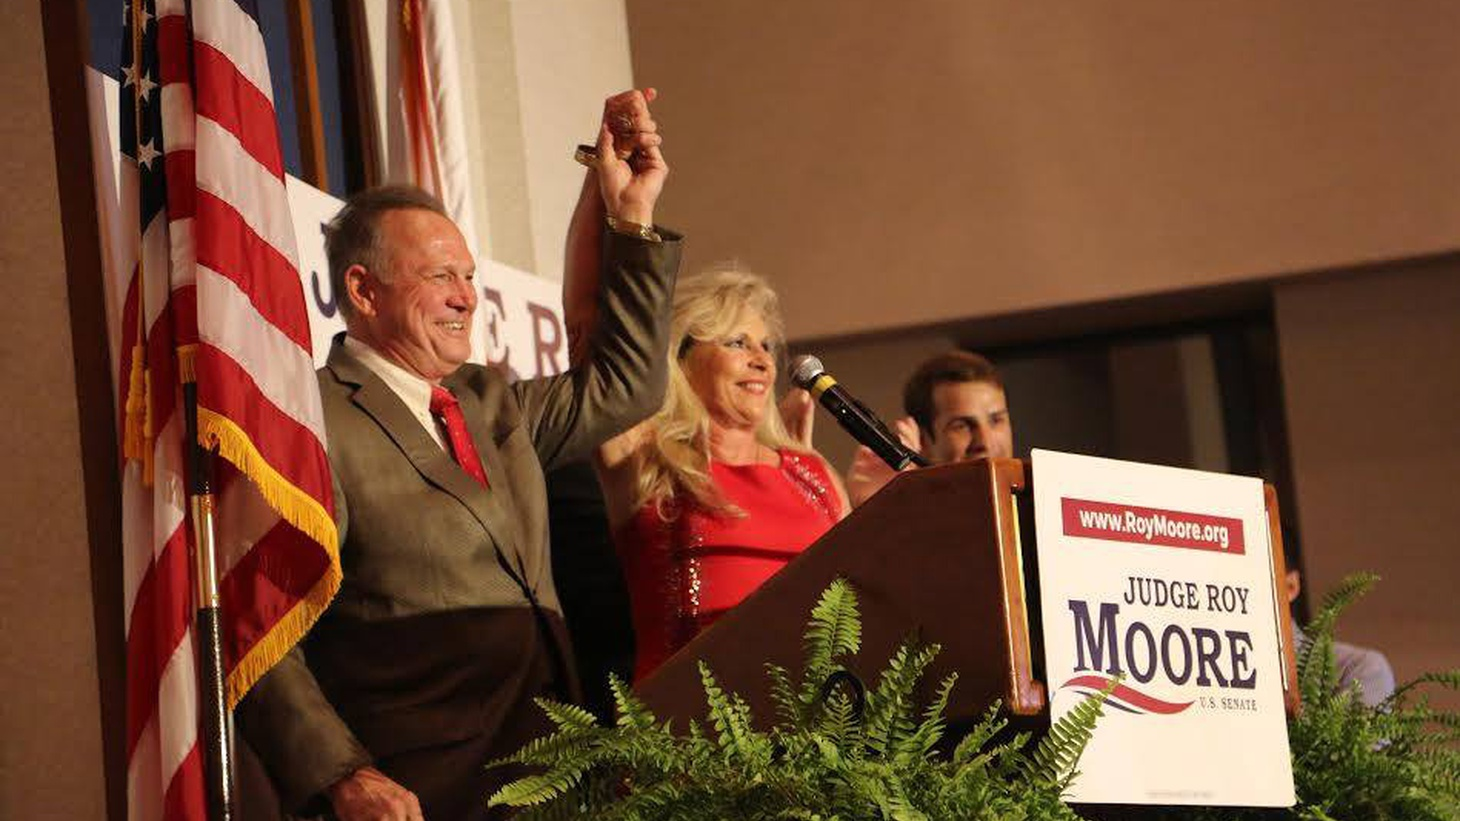 In the aftermath of yesterday's GOP primary in Alabama, President Trump has deleted his tweets supporting incumbent US Senator Luther Strange, the loser. Now, he's all in favor of former Judge Roy Moore, the religious right-winger who brandished a pistol on stage during one campaign rally.